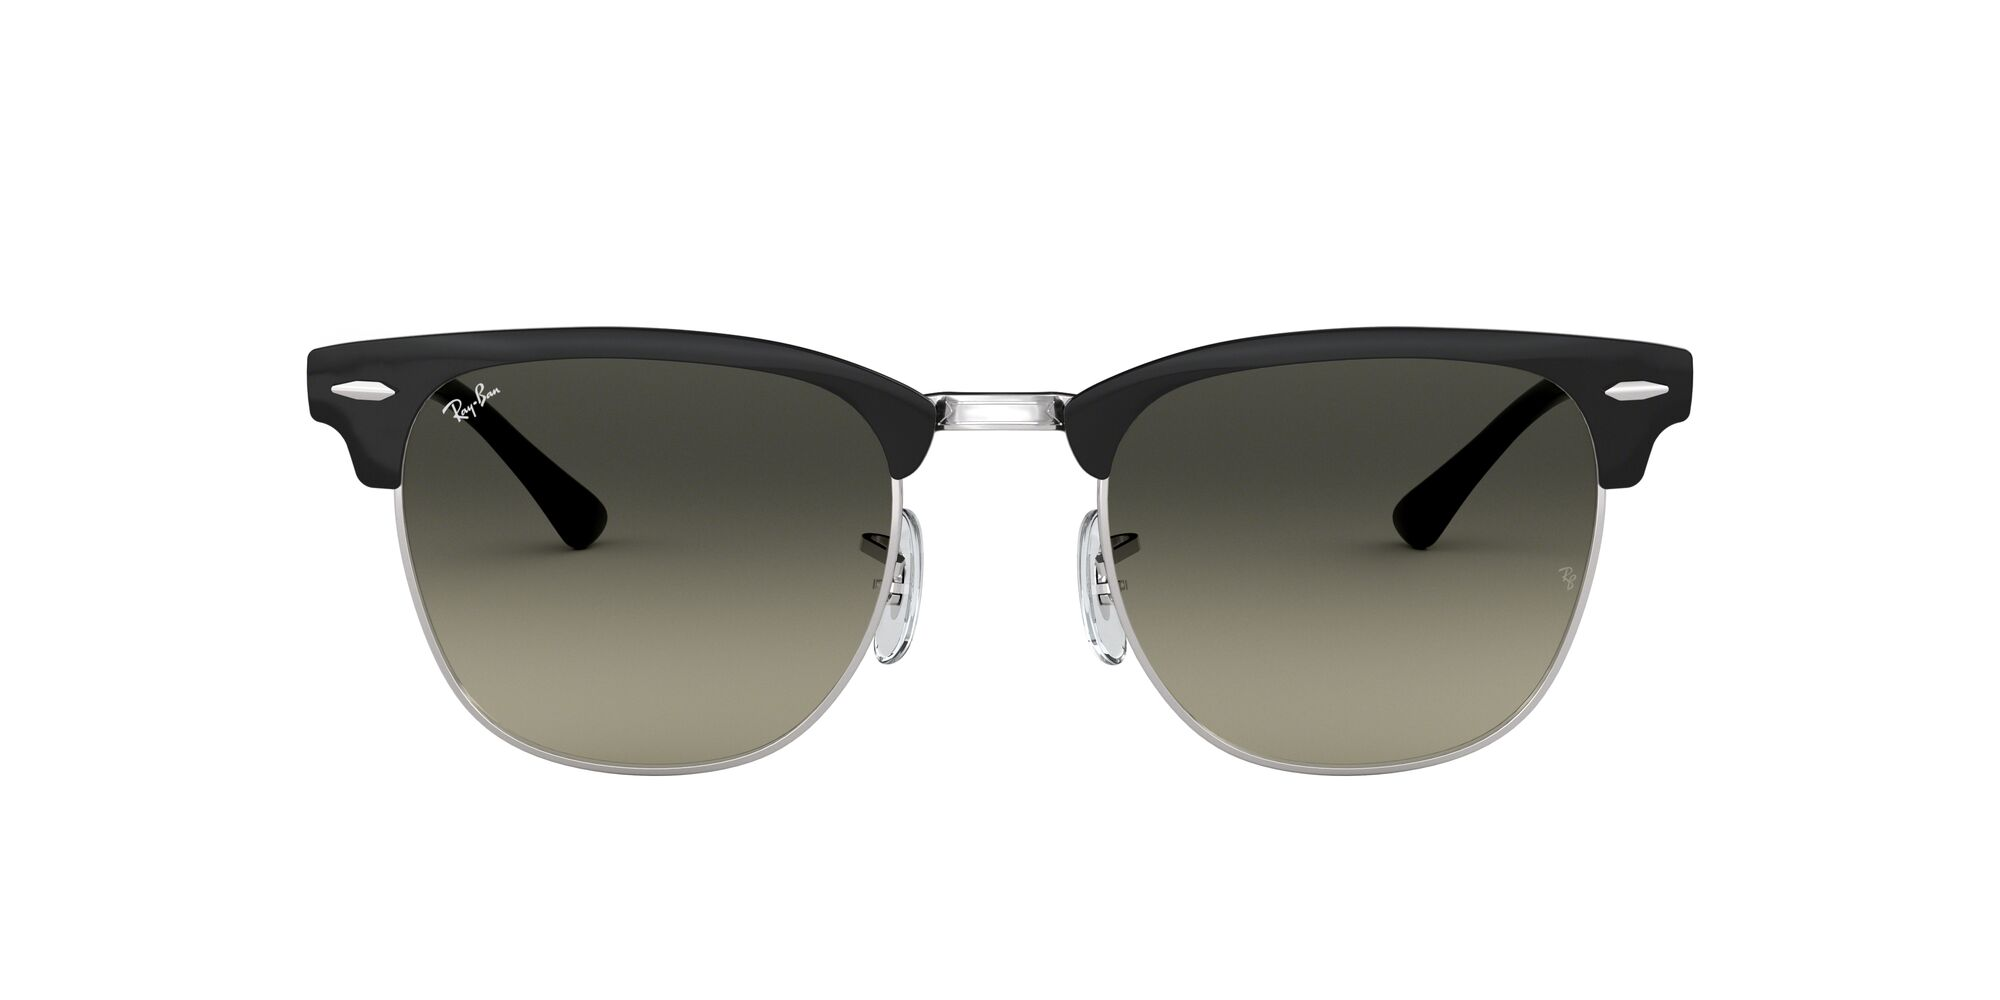 Front Ray-Ban Ray-Ban 0RB3716 900471 51/21 Zilver/Grijs